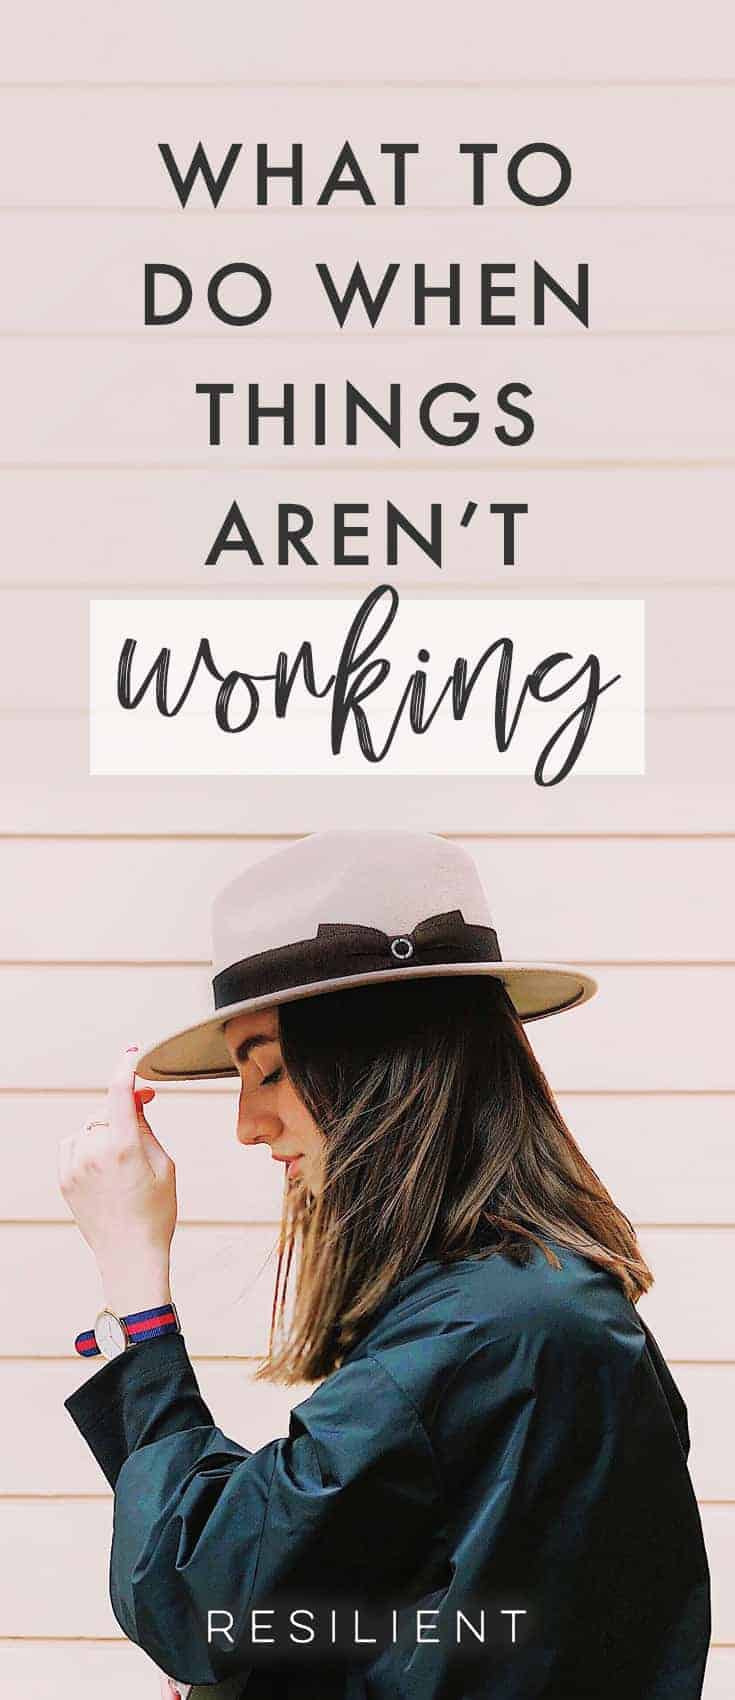 There are times in life when things appear more to be falling apart than falling into place. Here's what to do when things aren't working.